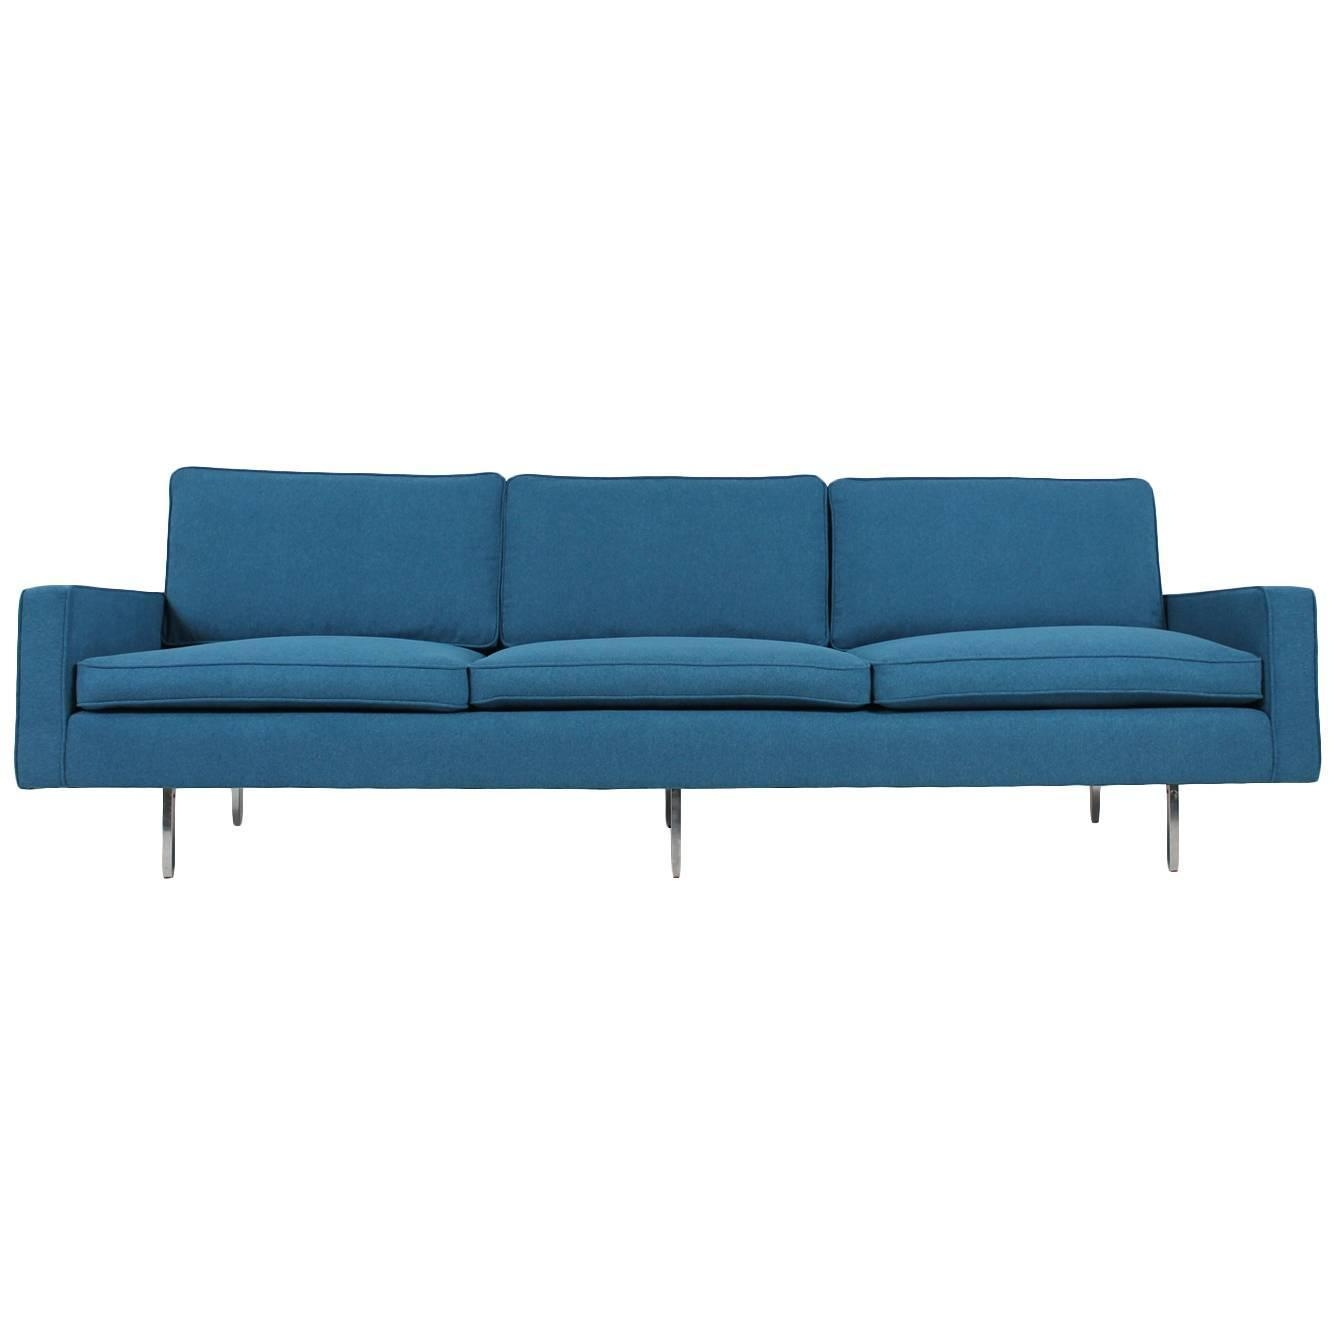 Beautiful Mid Century Florence Knoll Sofa Mod (View 4 of 20)